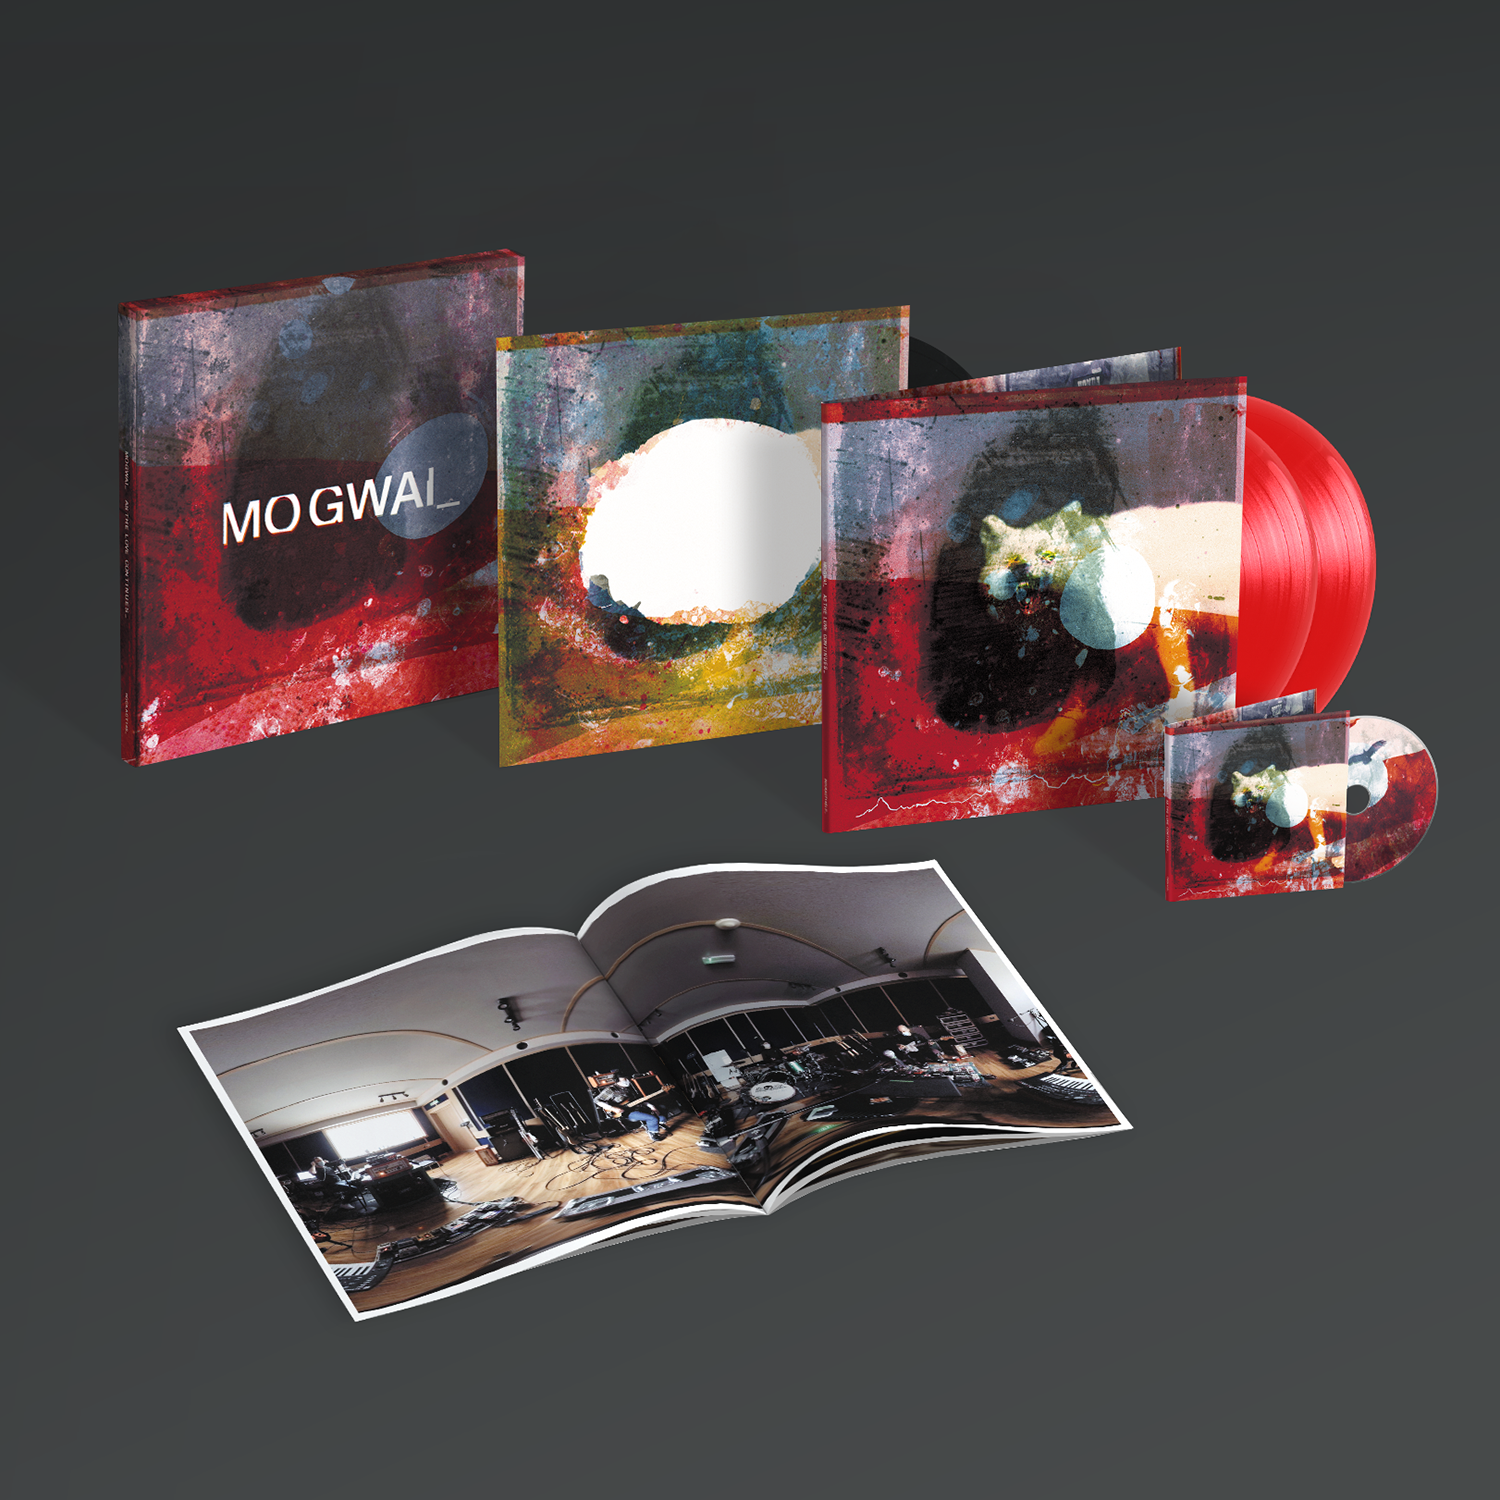 """Mogwai - As the Love Continues Limited Edition 2LP+12"""" Red Vinyl Box Set + CD and Photo Booklet"""